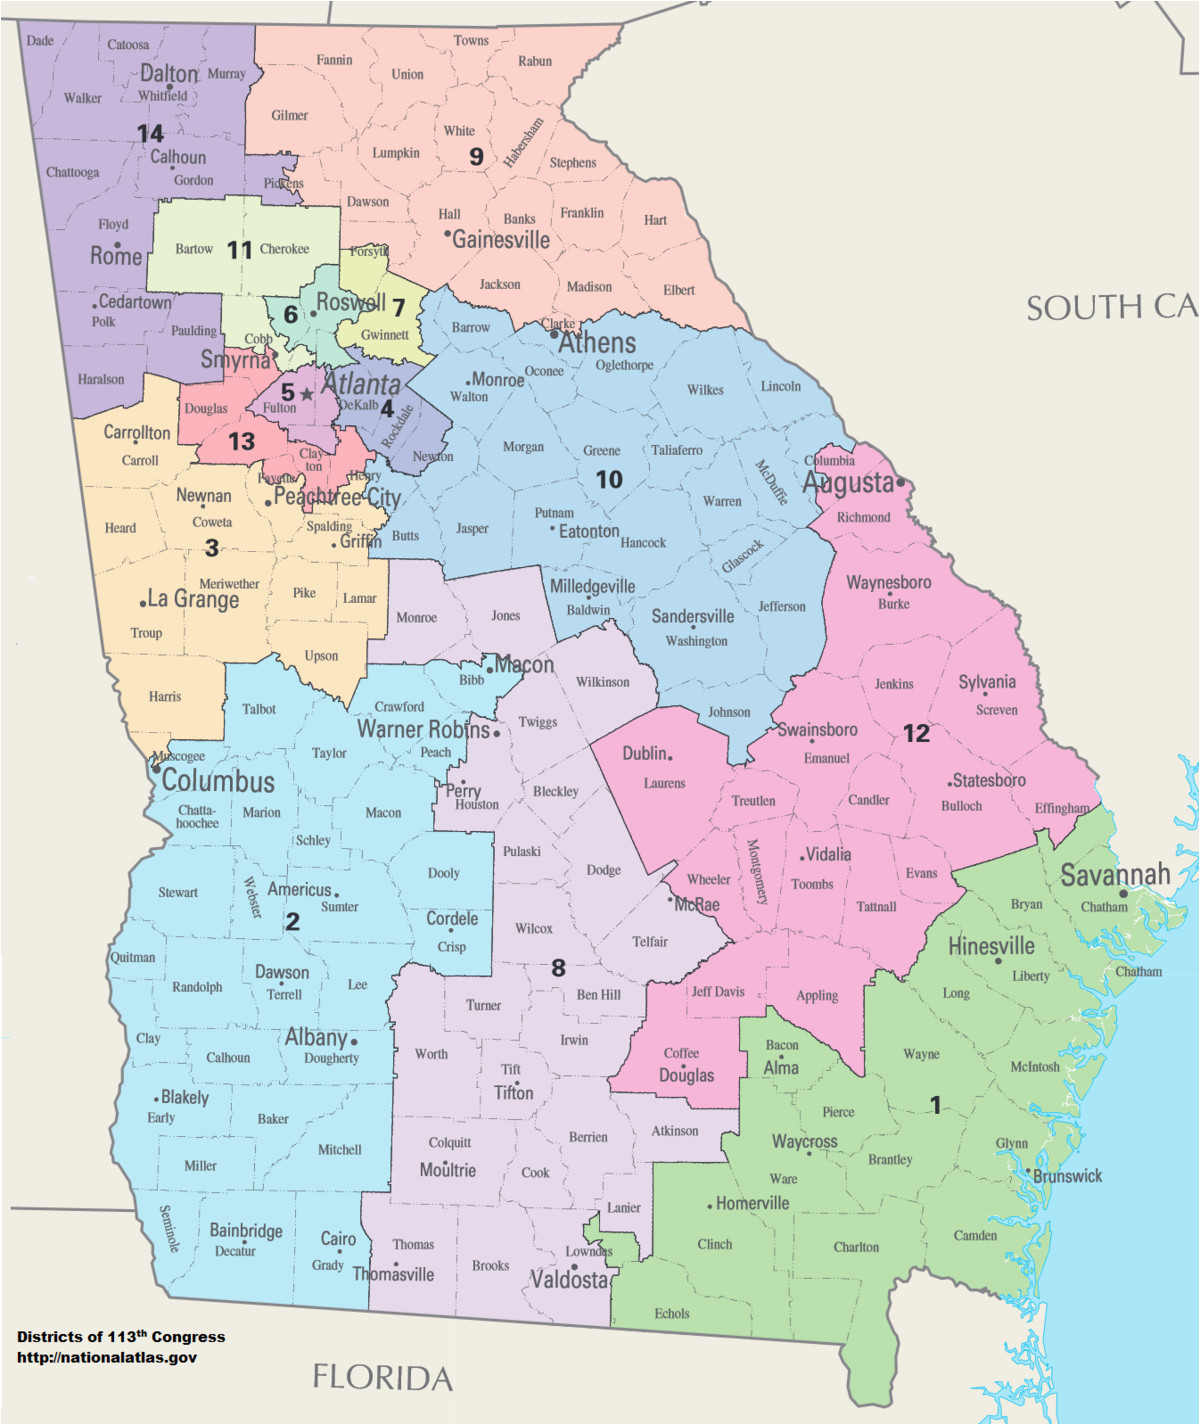 Zip Code Map Of Georgia.Atlanta Georgia Zip Code Map Georgia S Congressional Districts